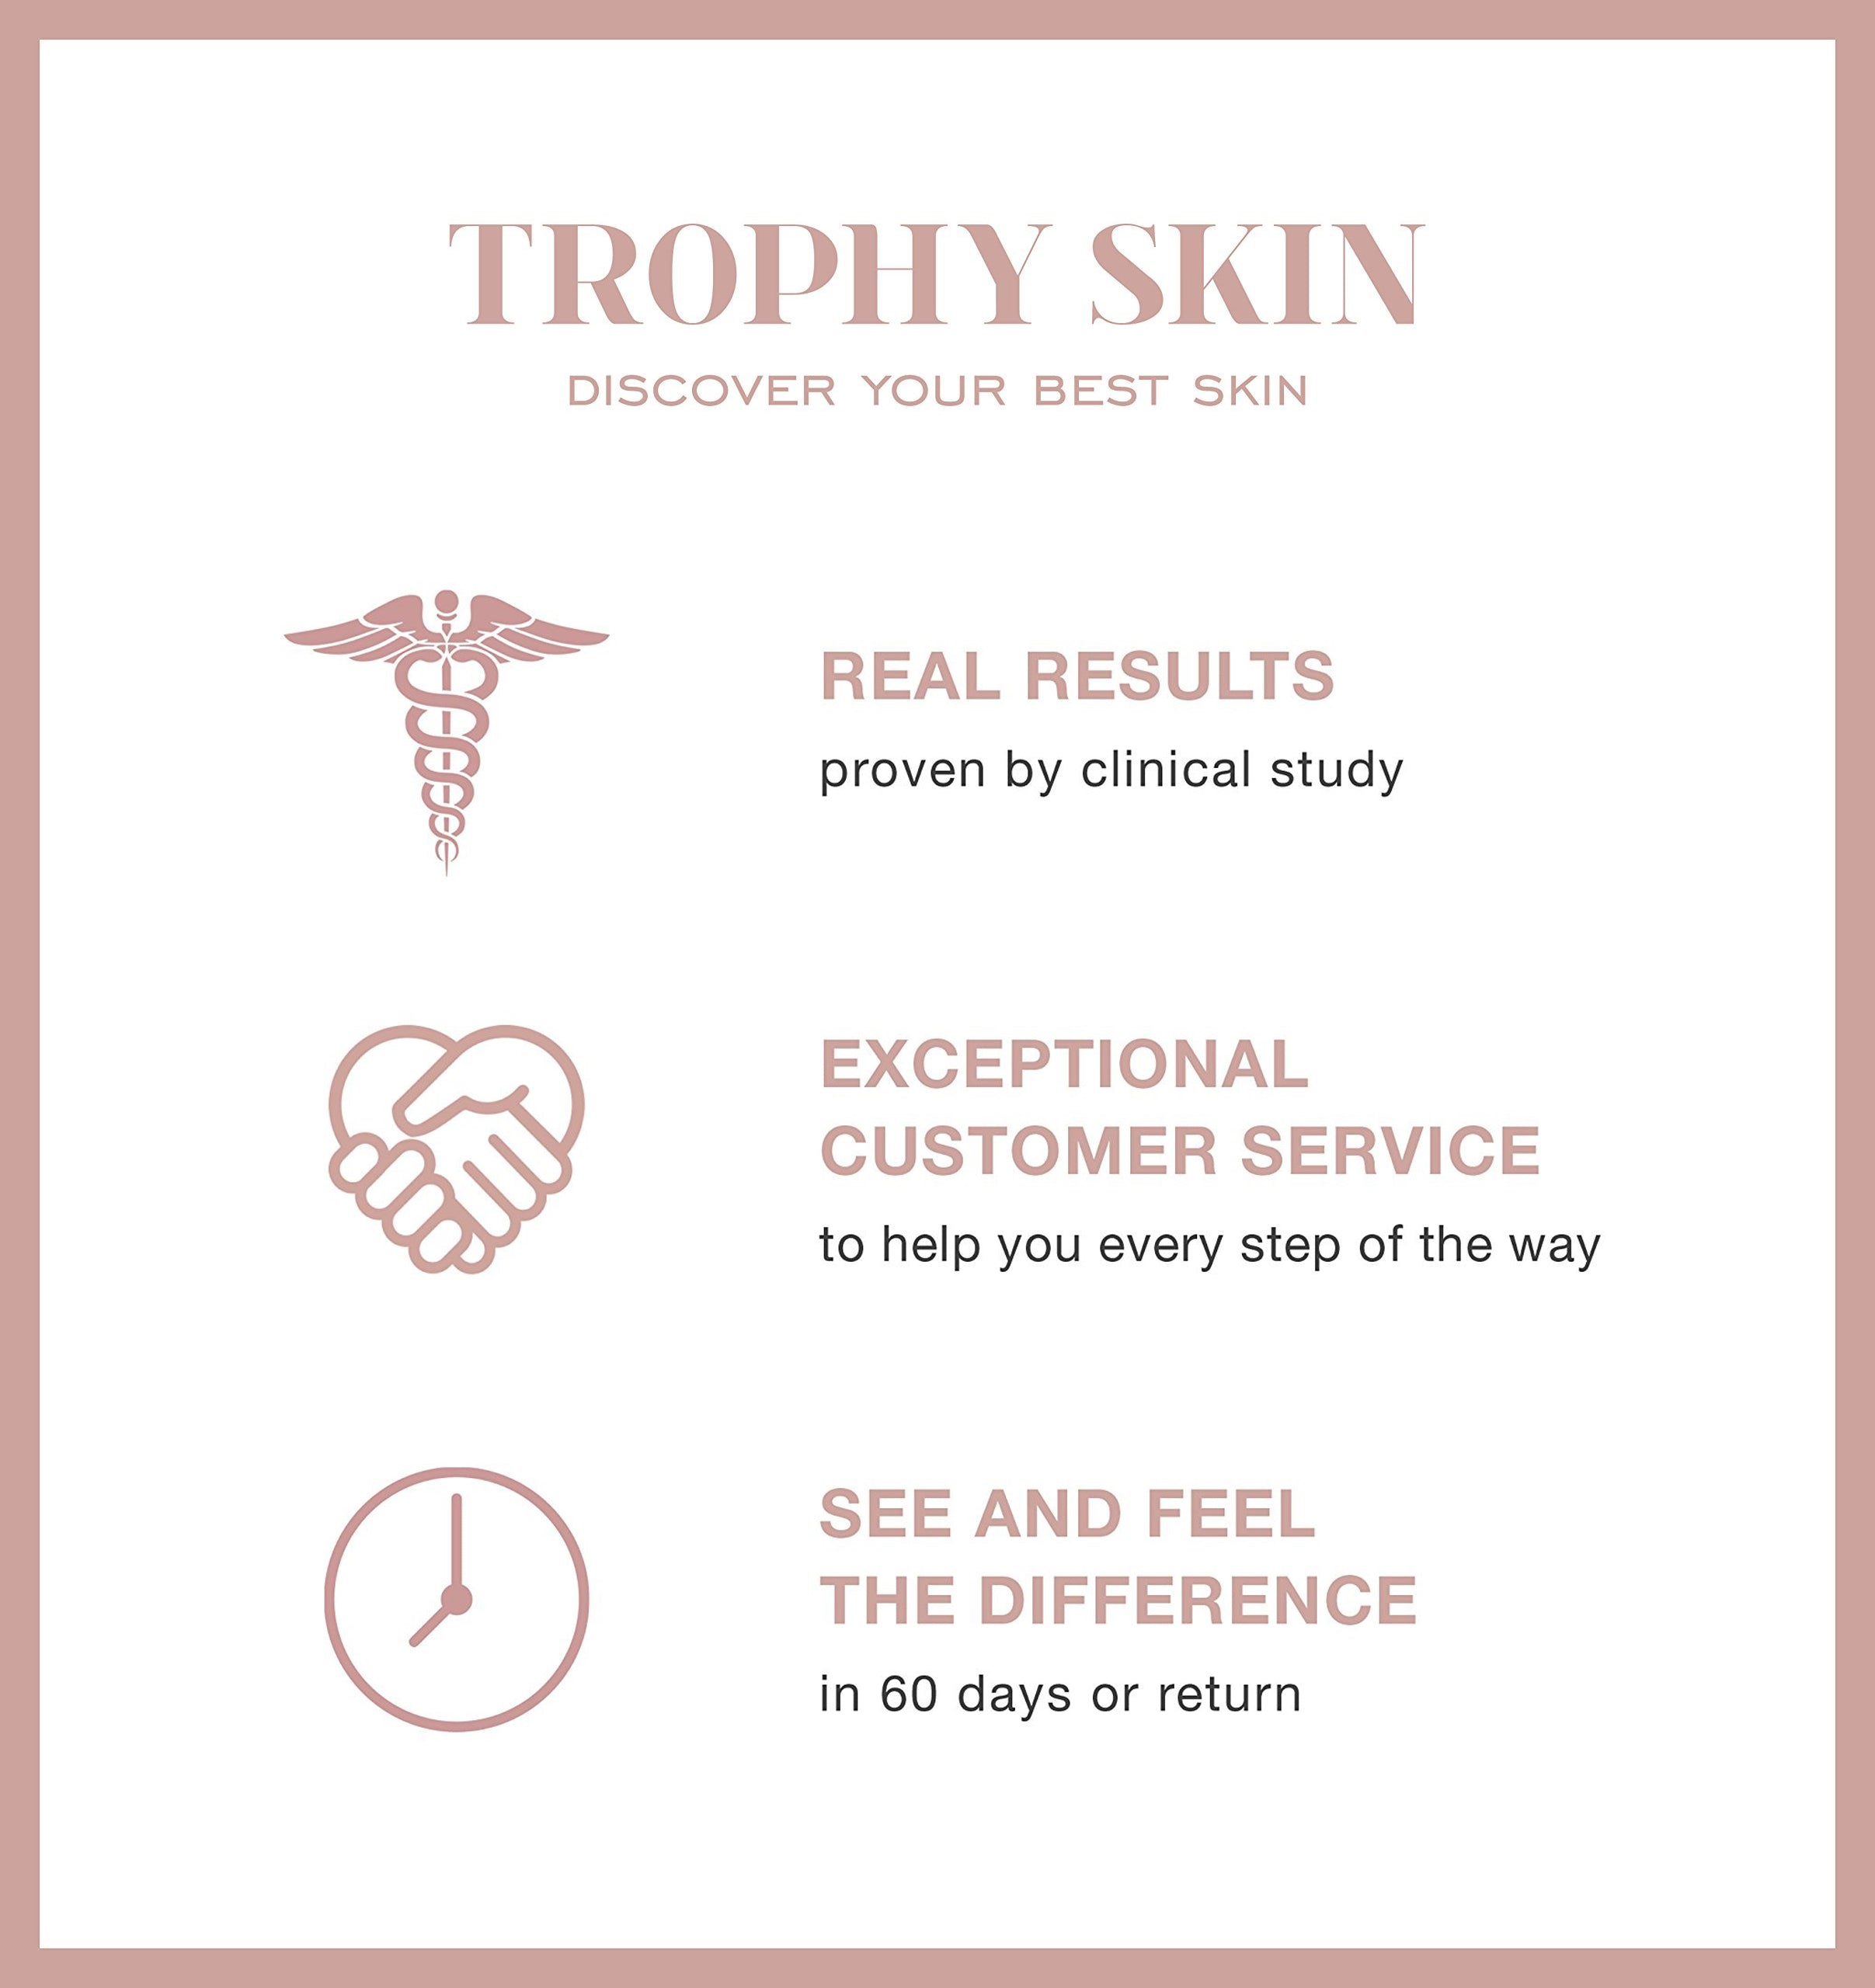 trophy skin discover your best skin with real results